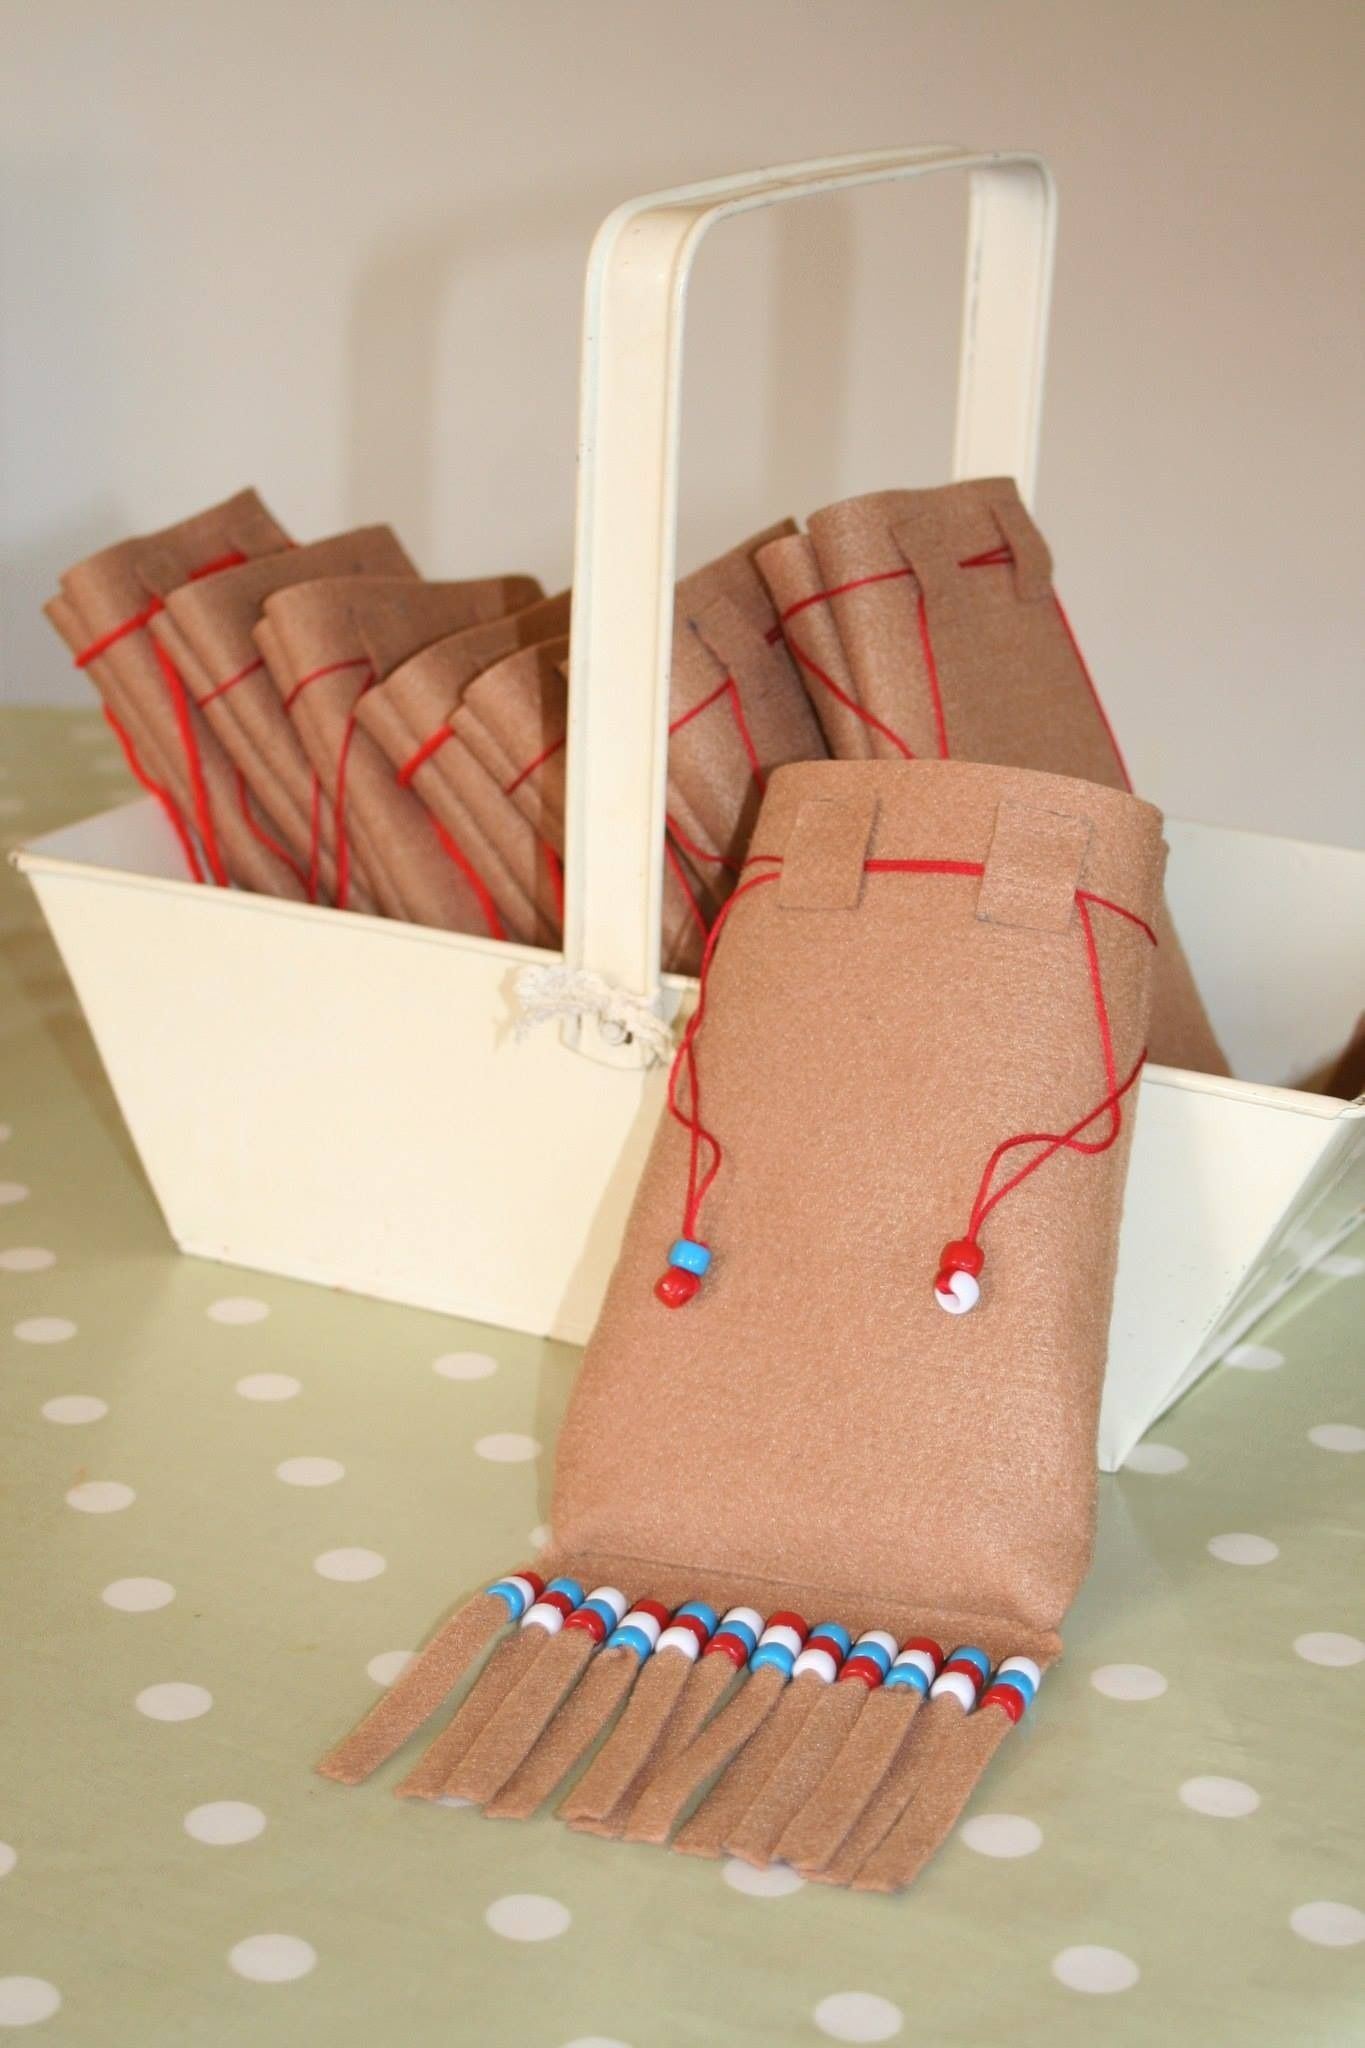 Party bags for Pocahontas party - Tutorial on website. X